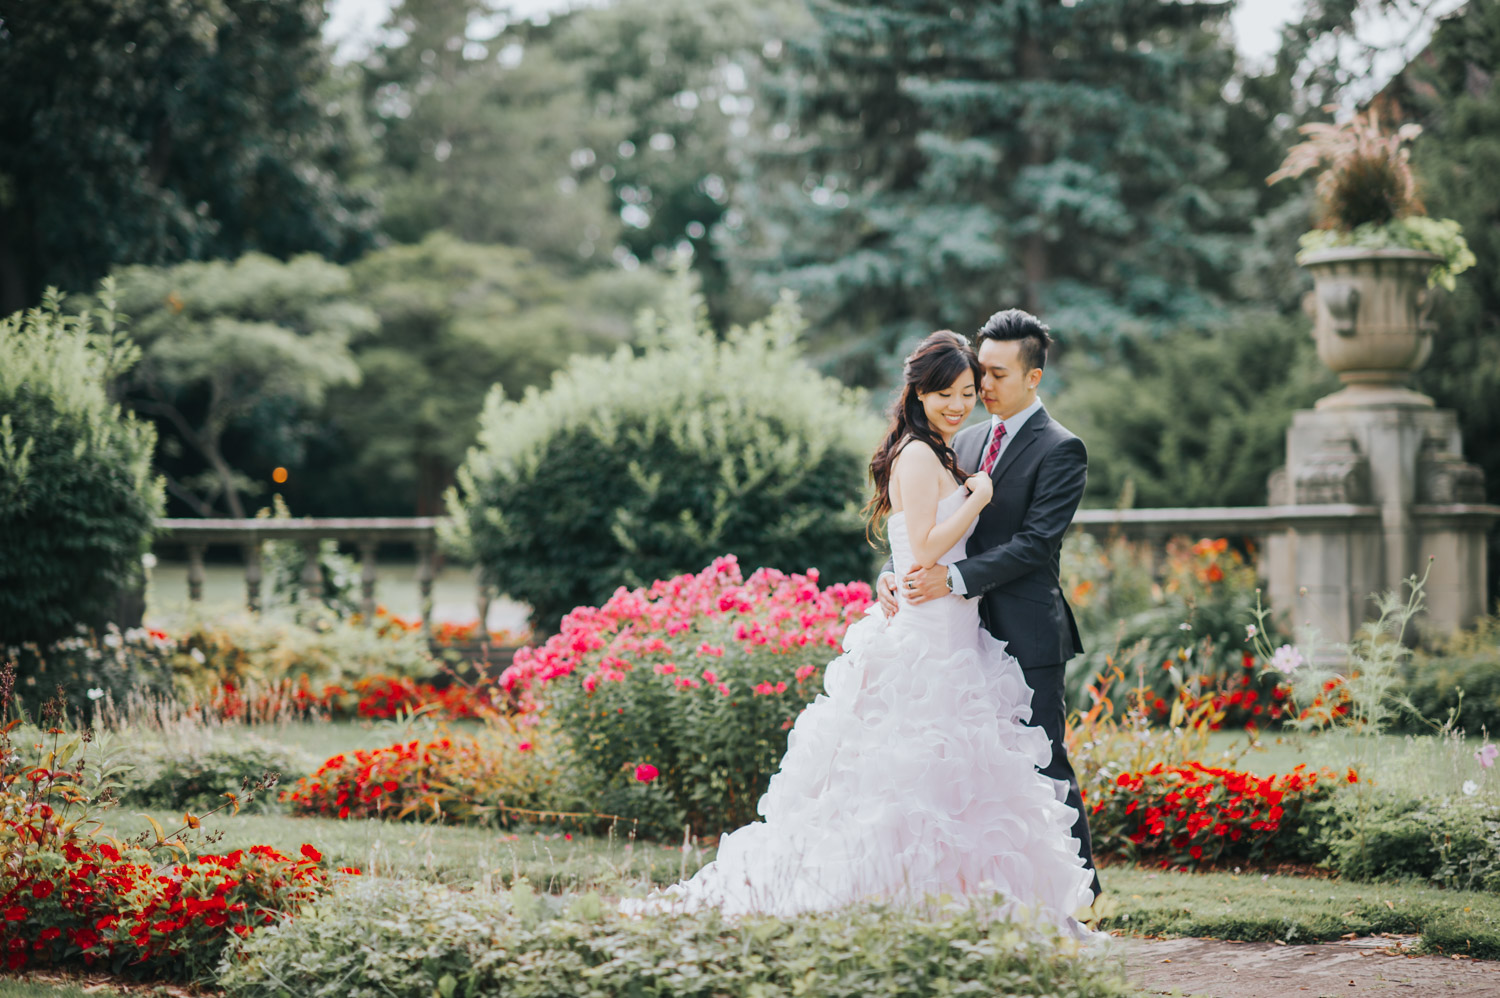 Glendon Campus Prewedding Session pink dress